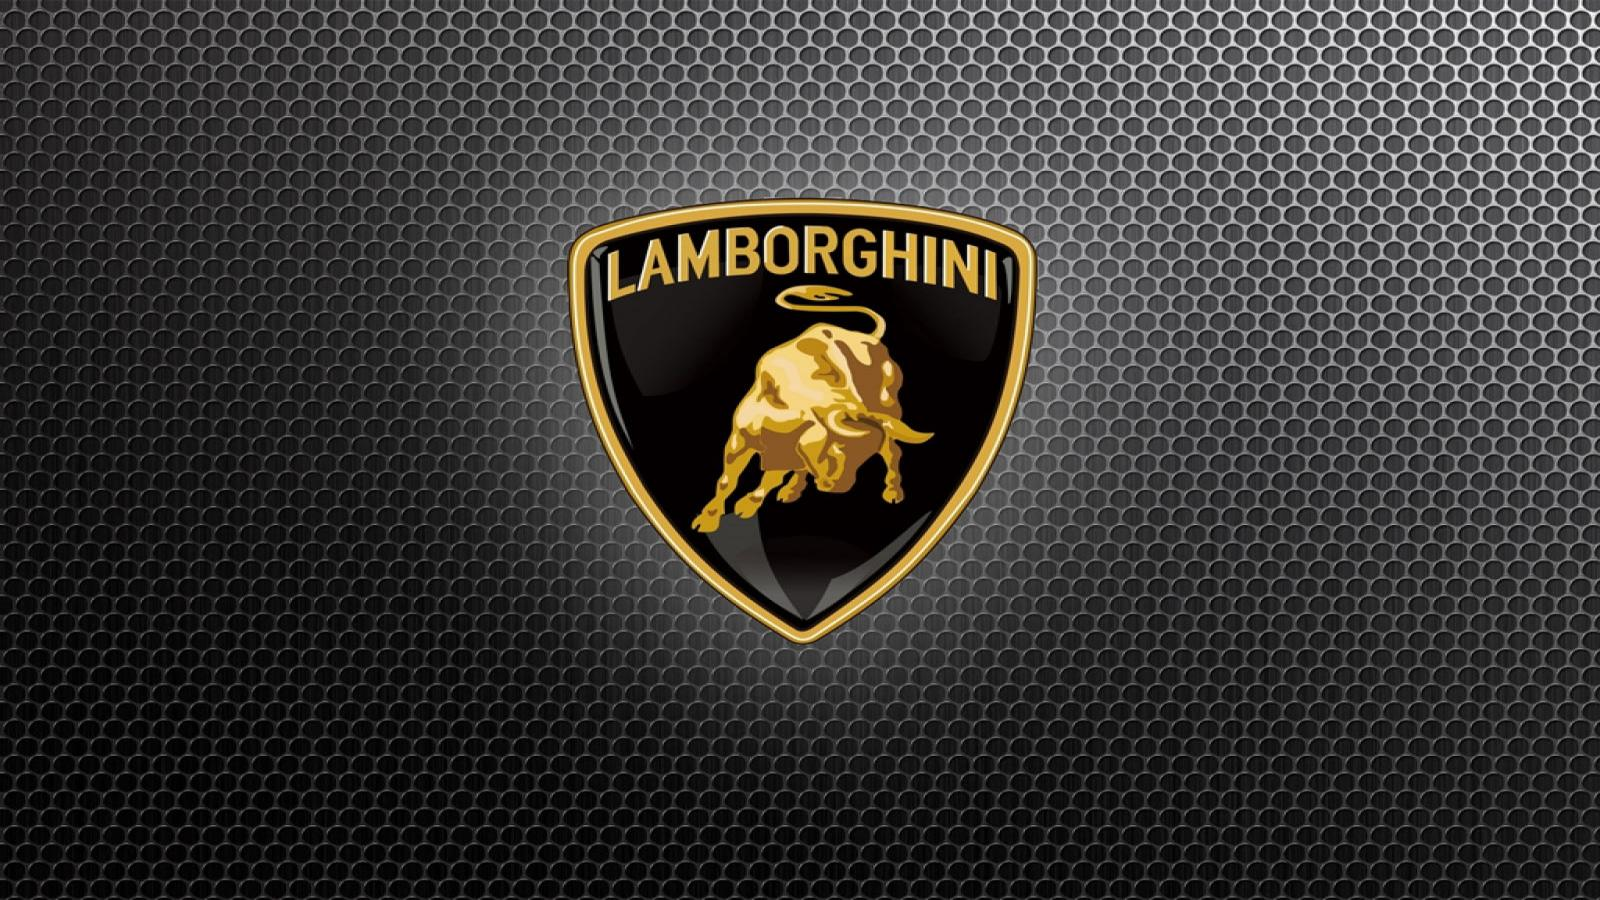 Download Lamborghini Logo Wallpapers Pictures Images [1600x900 1600x900